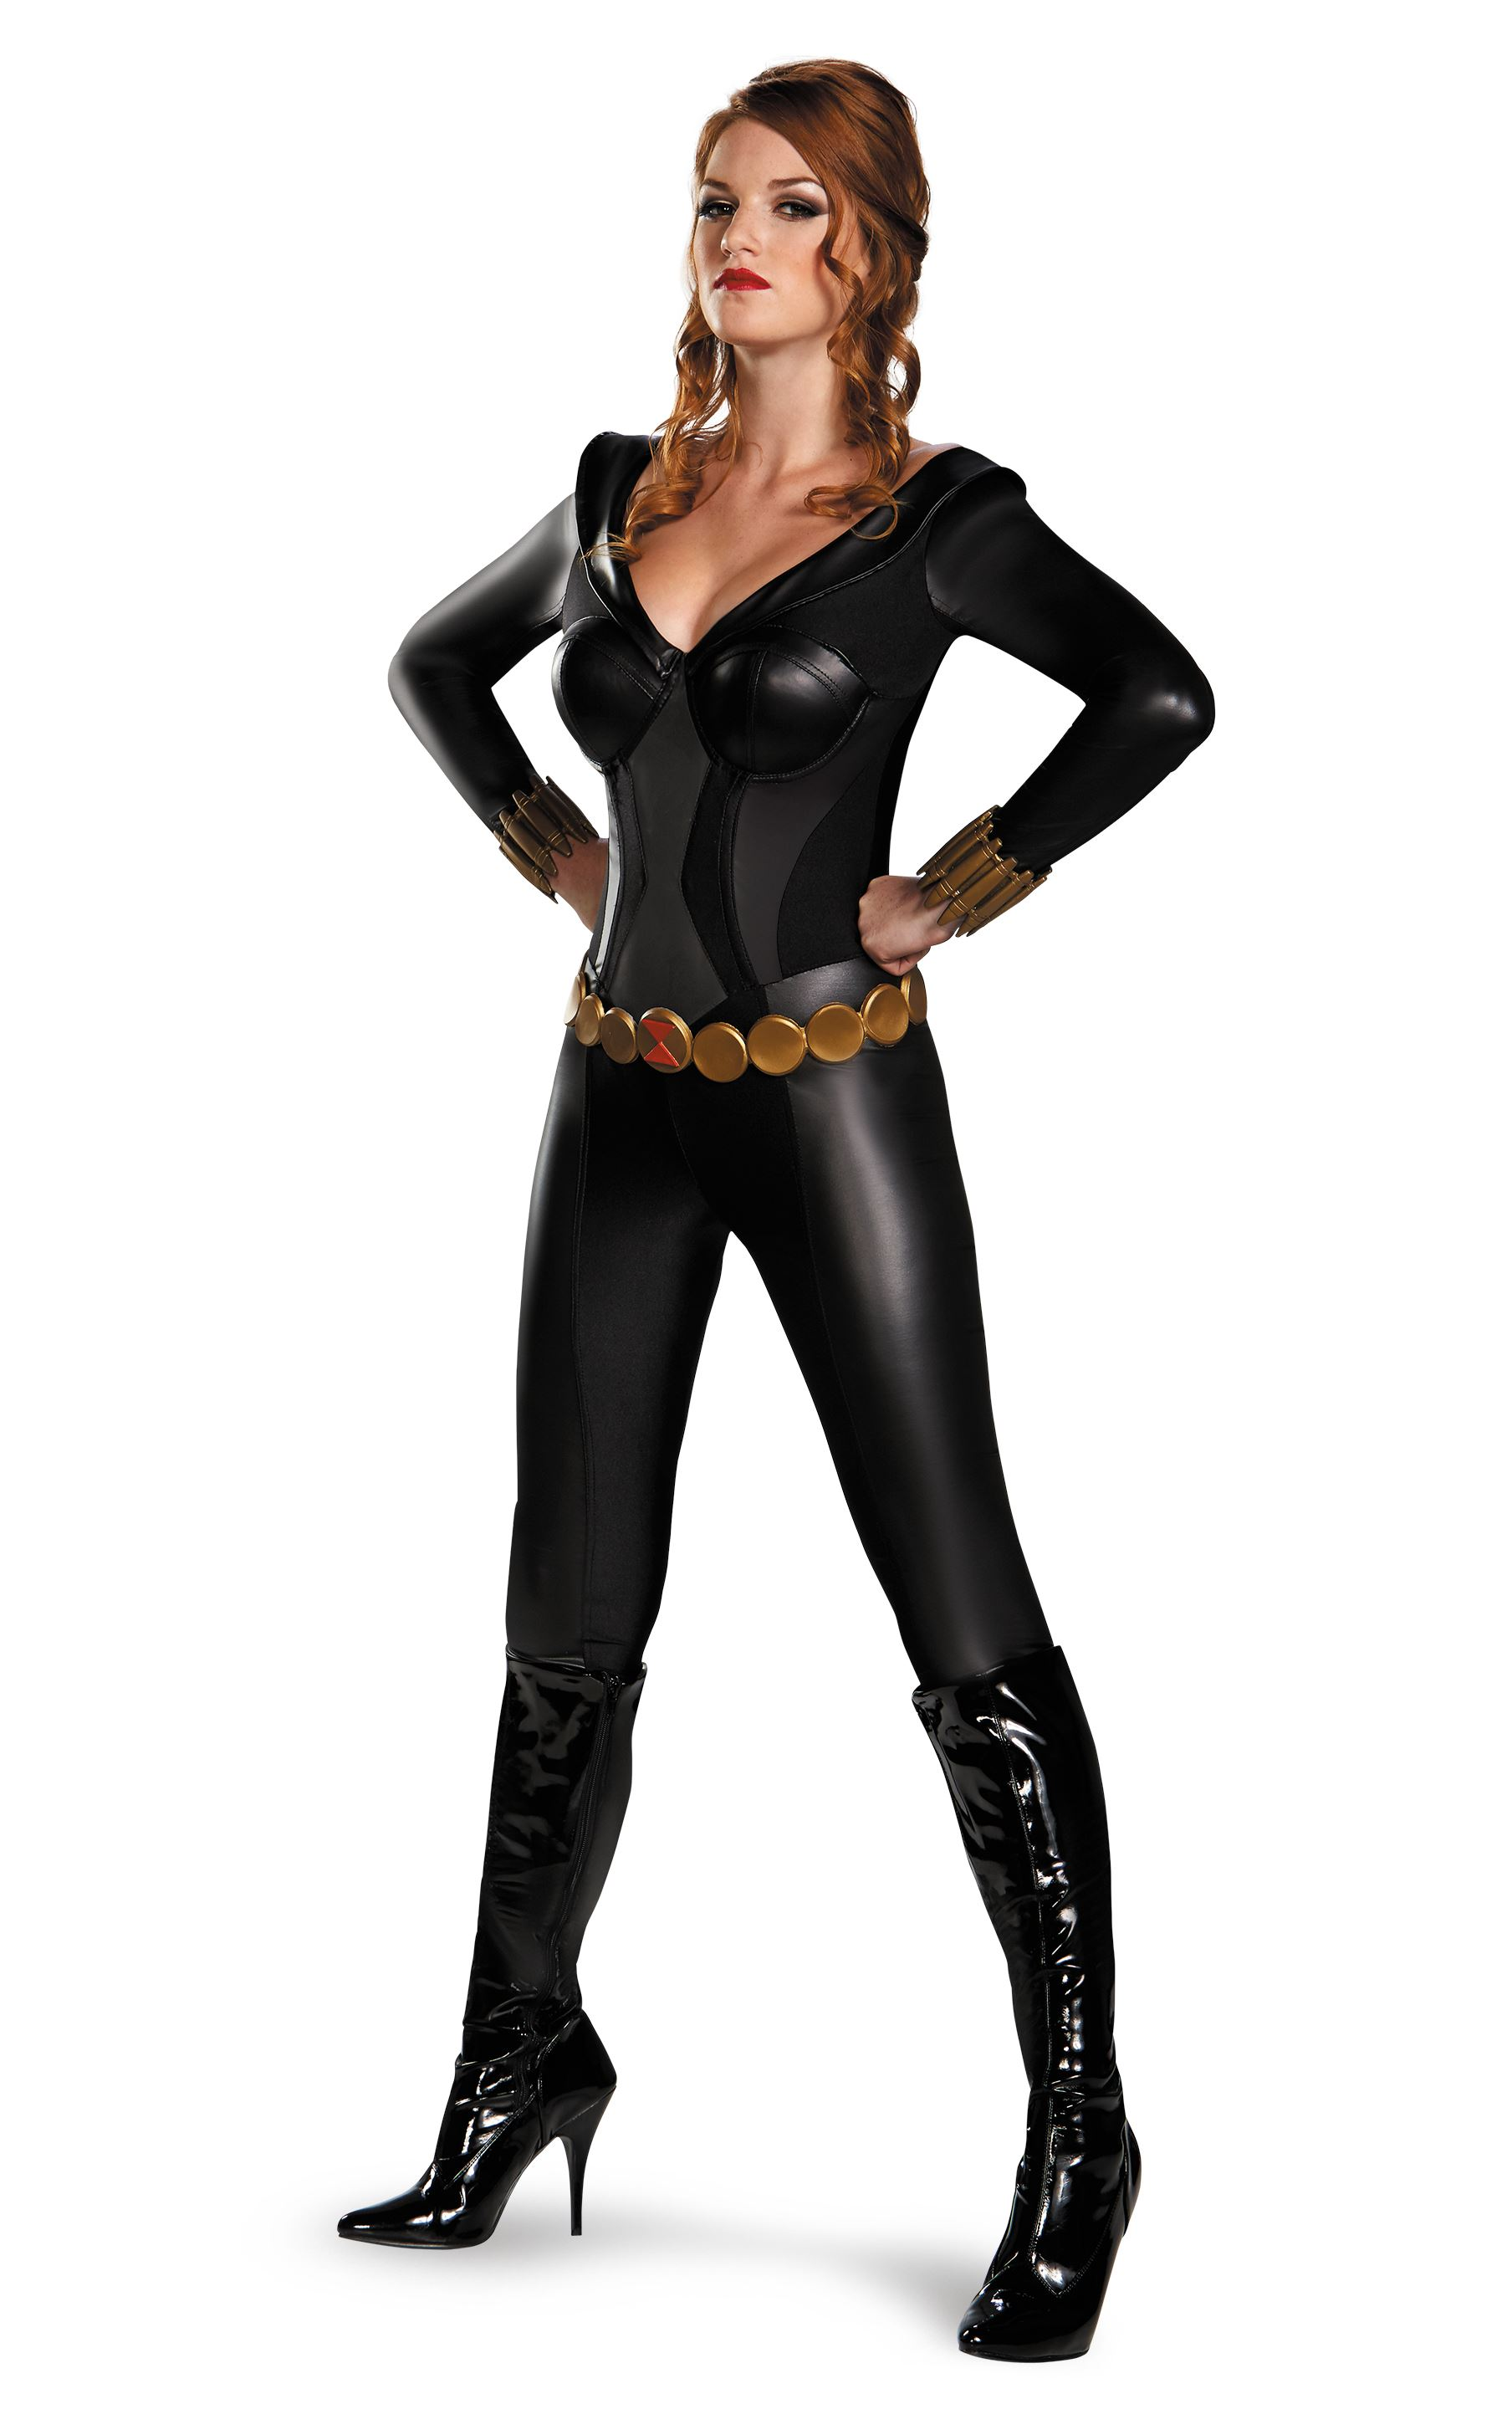 How to make a marvel black widow costume - photo#17